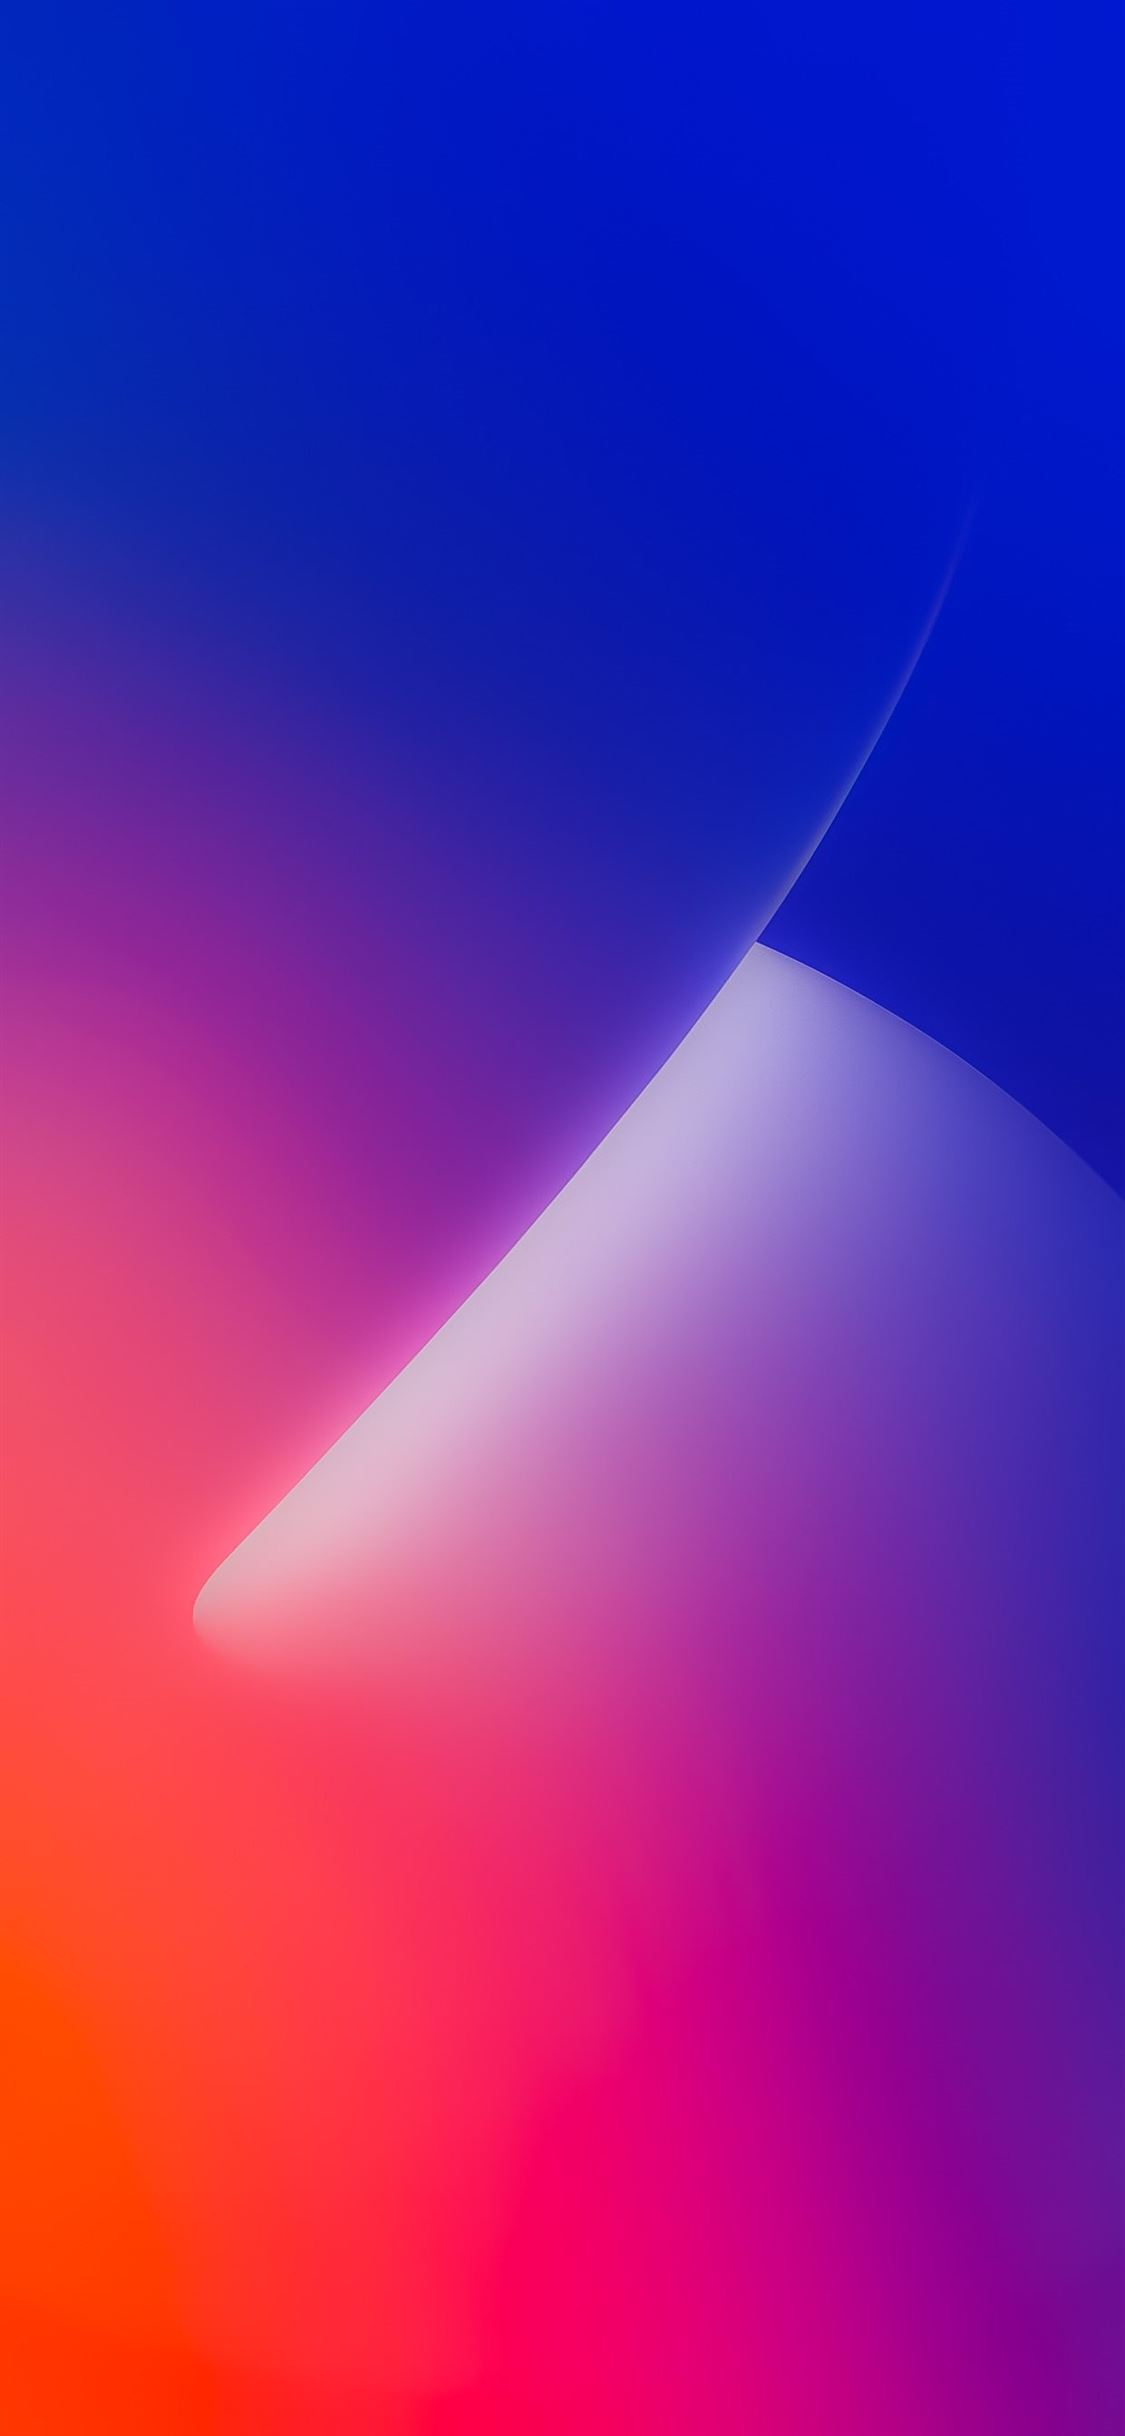 iOS14 wallpaper